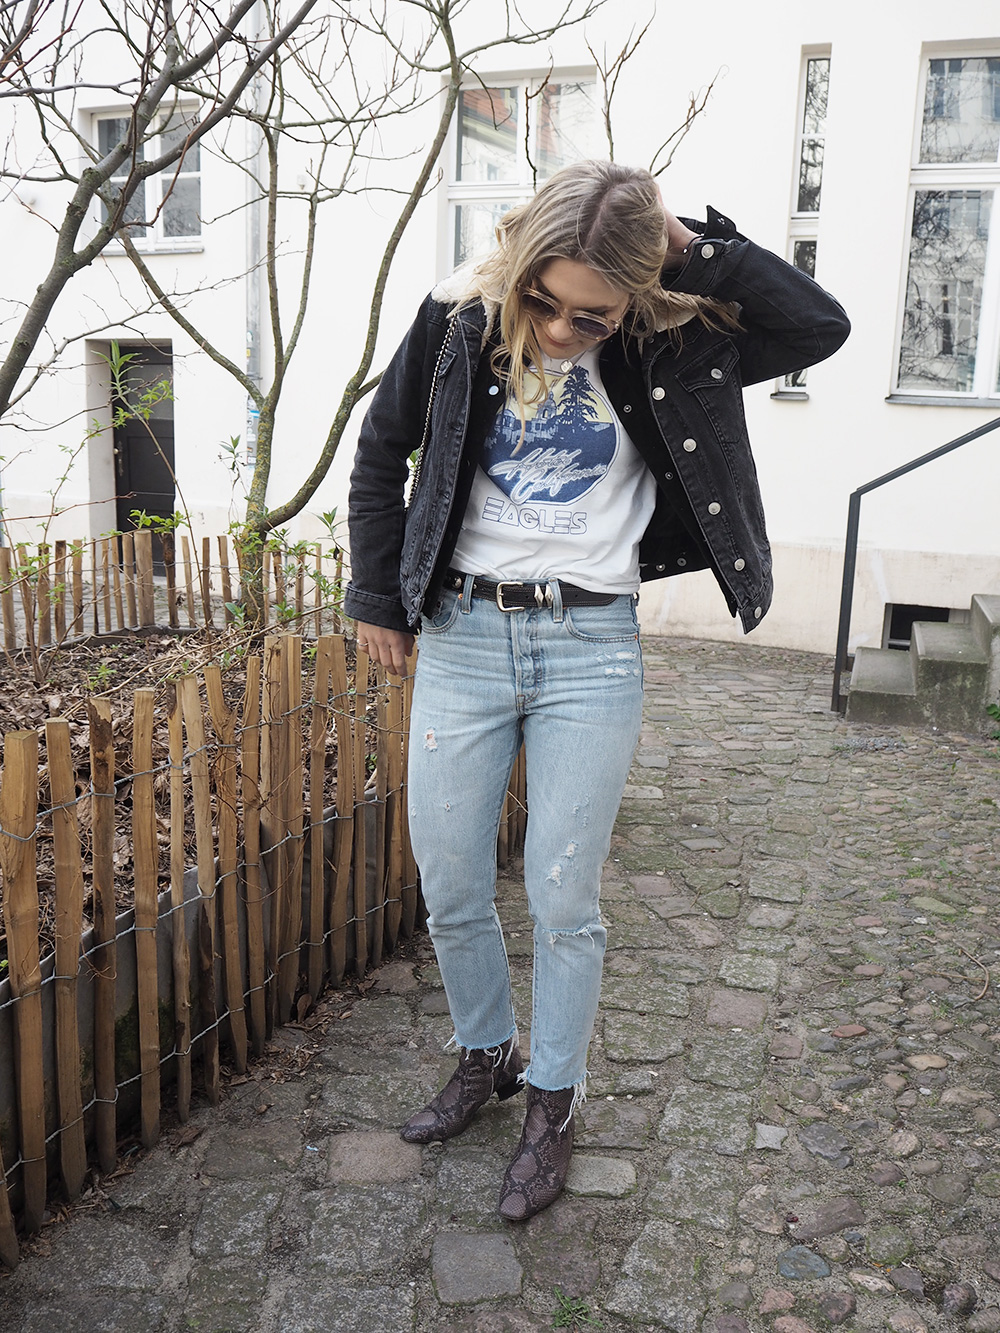 Rosycheeks-blog-Eagles-shirt-levis-501-skinny